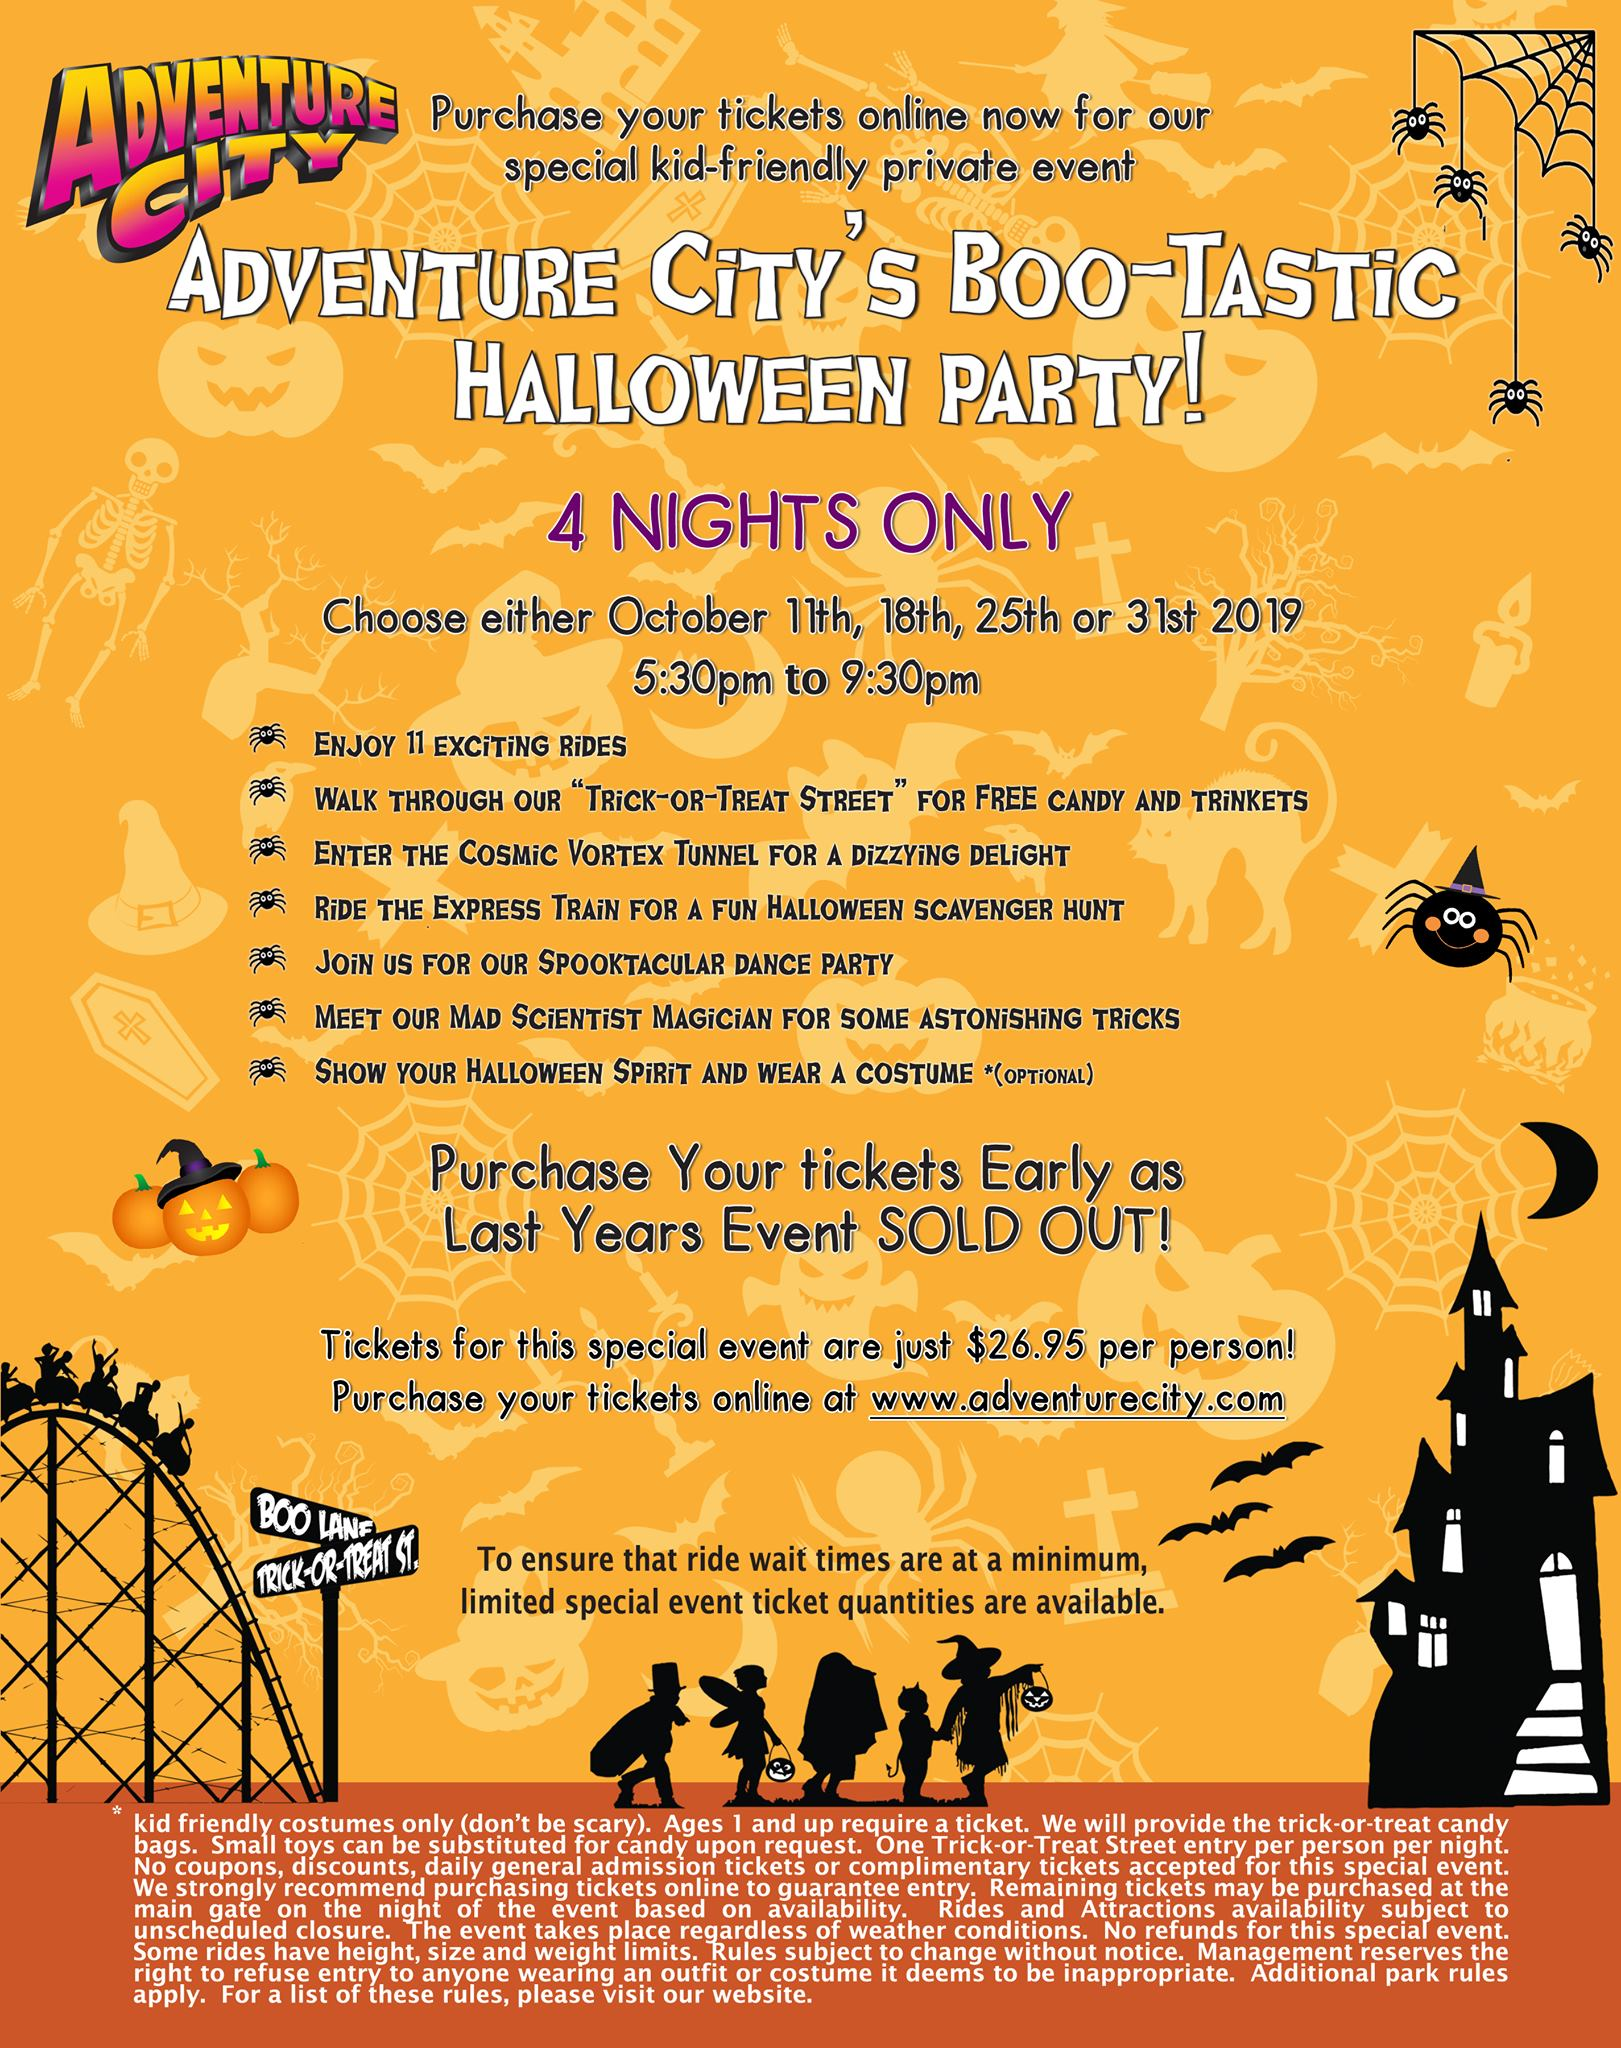 Adventure City's BooTastic Halloween Party!